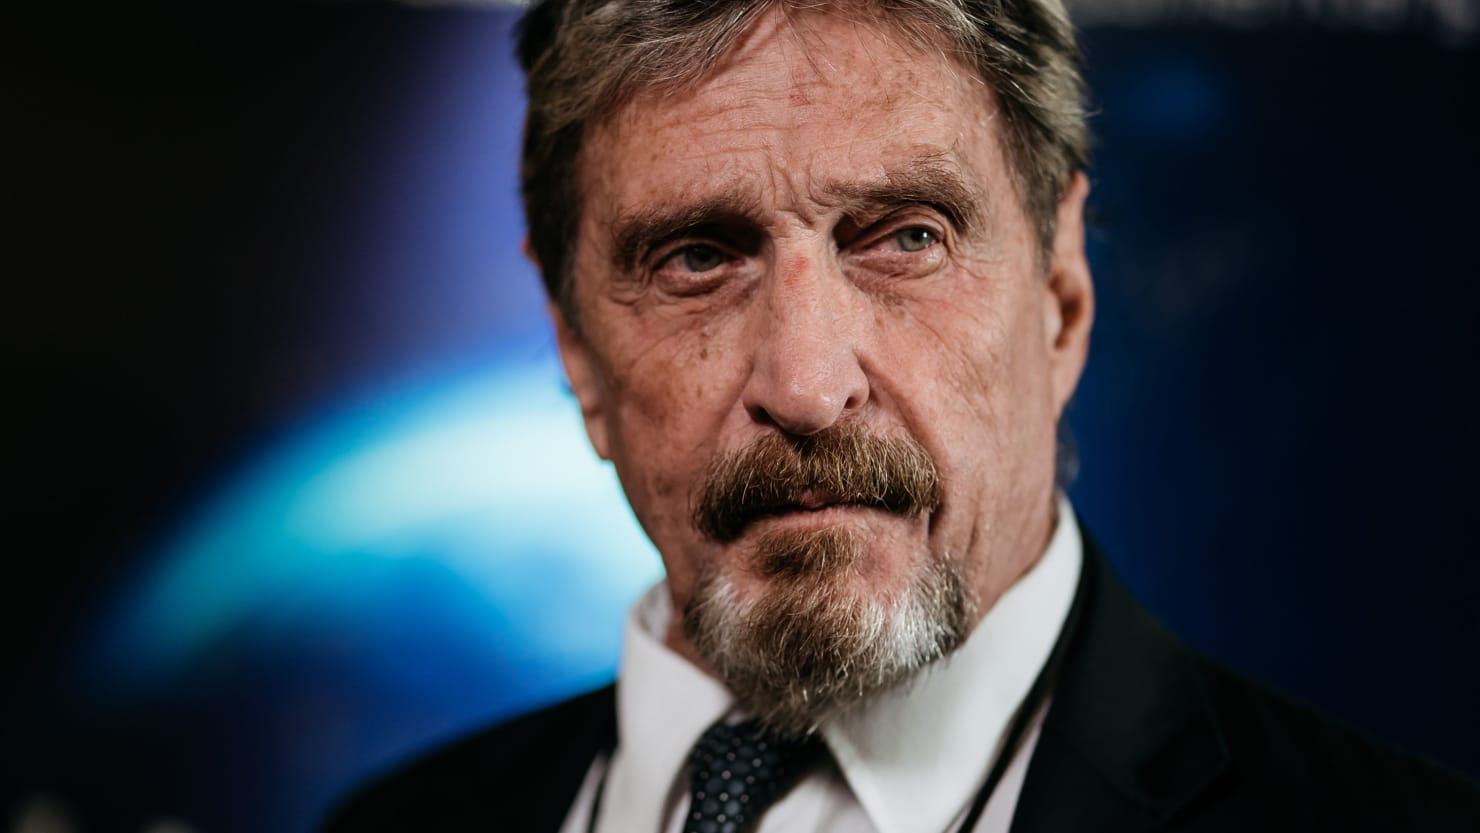 Eccentric Antivirus Rich particular person John McAfee Accused of Making Millions in Illegal Crypto Schemes